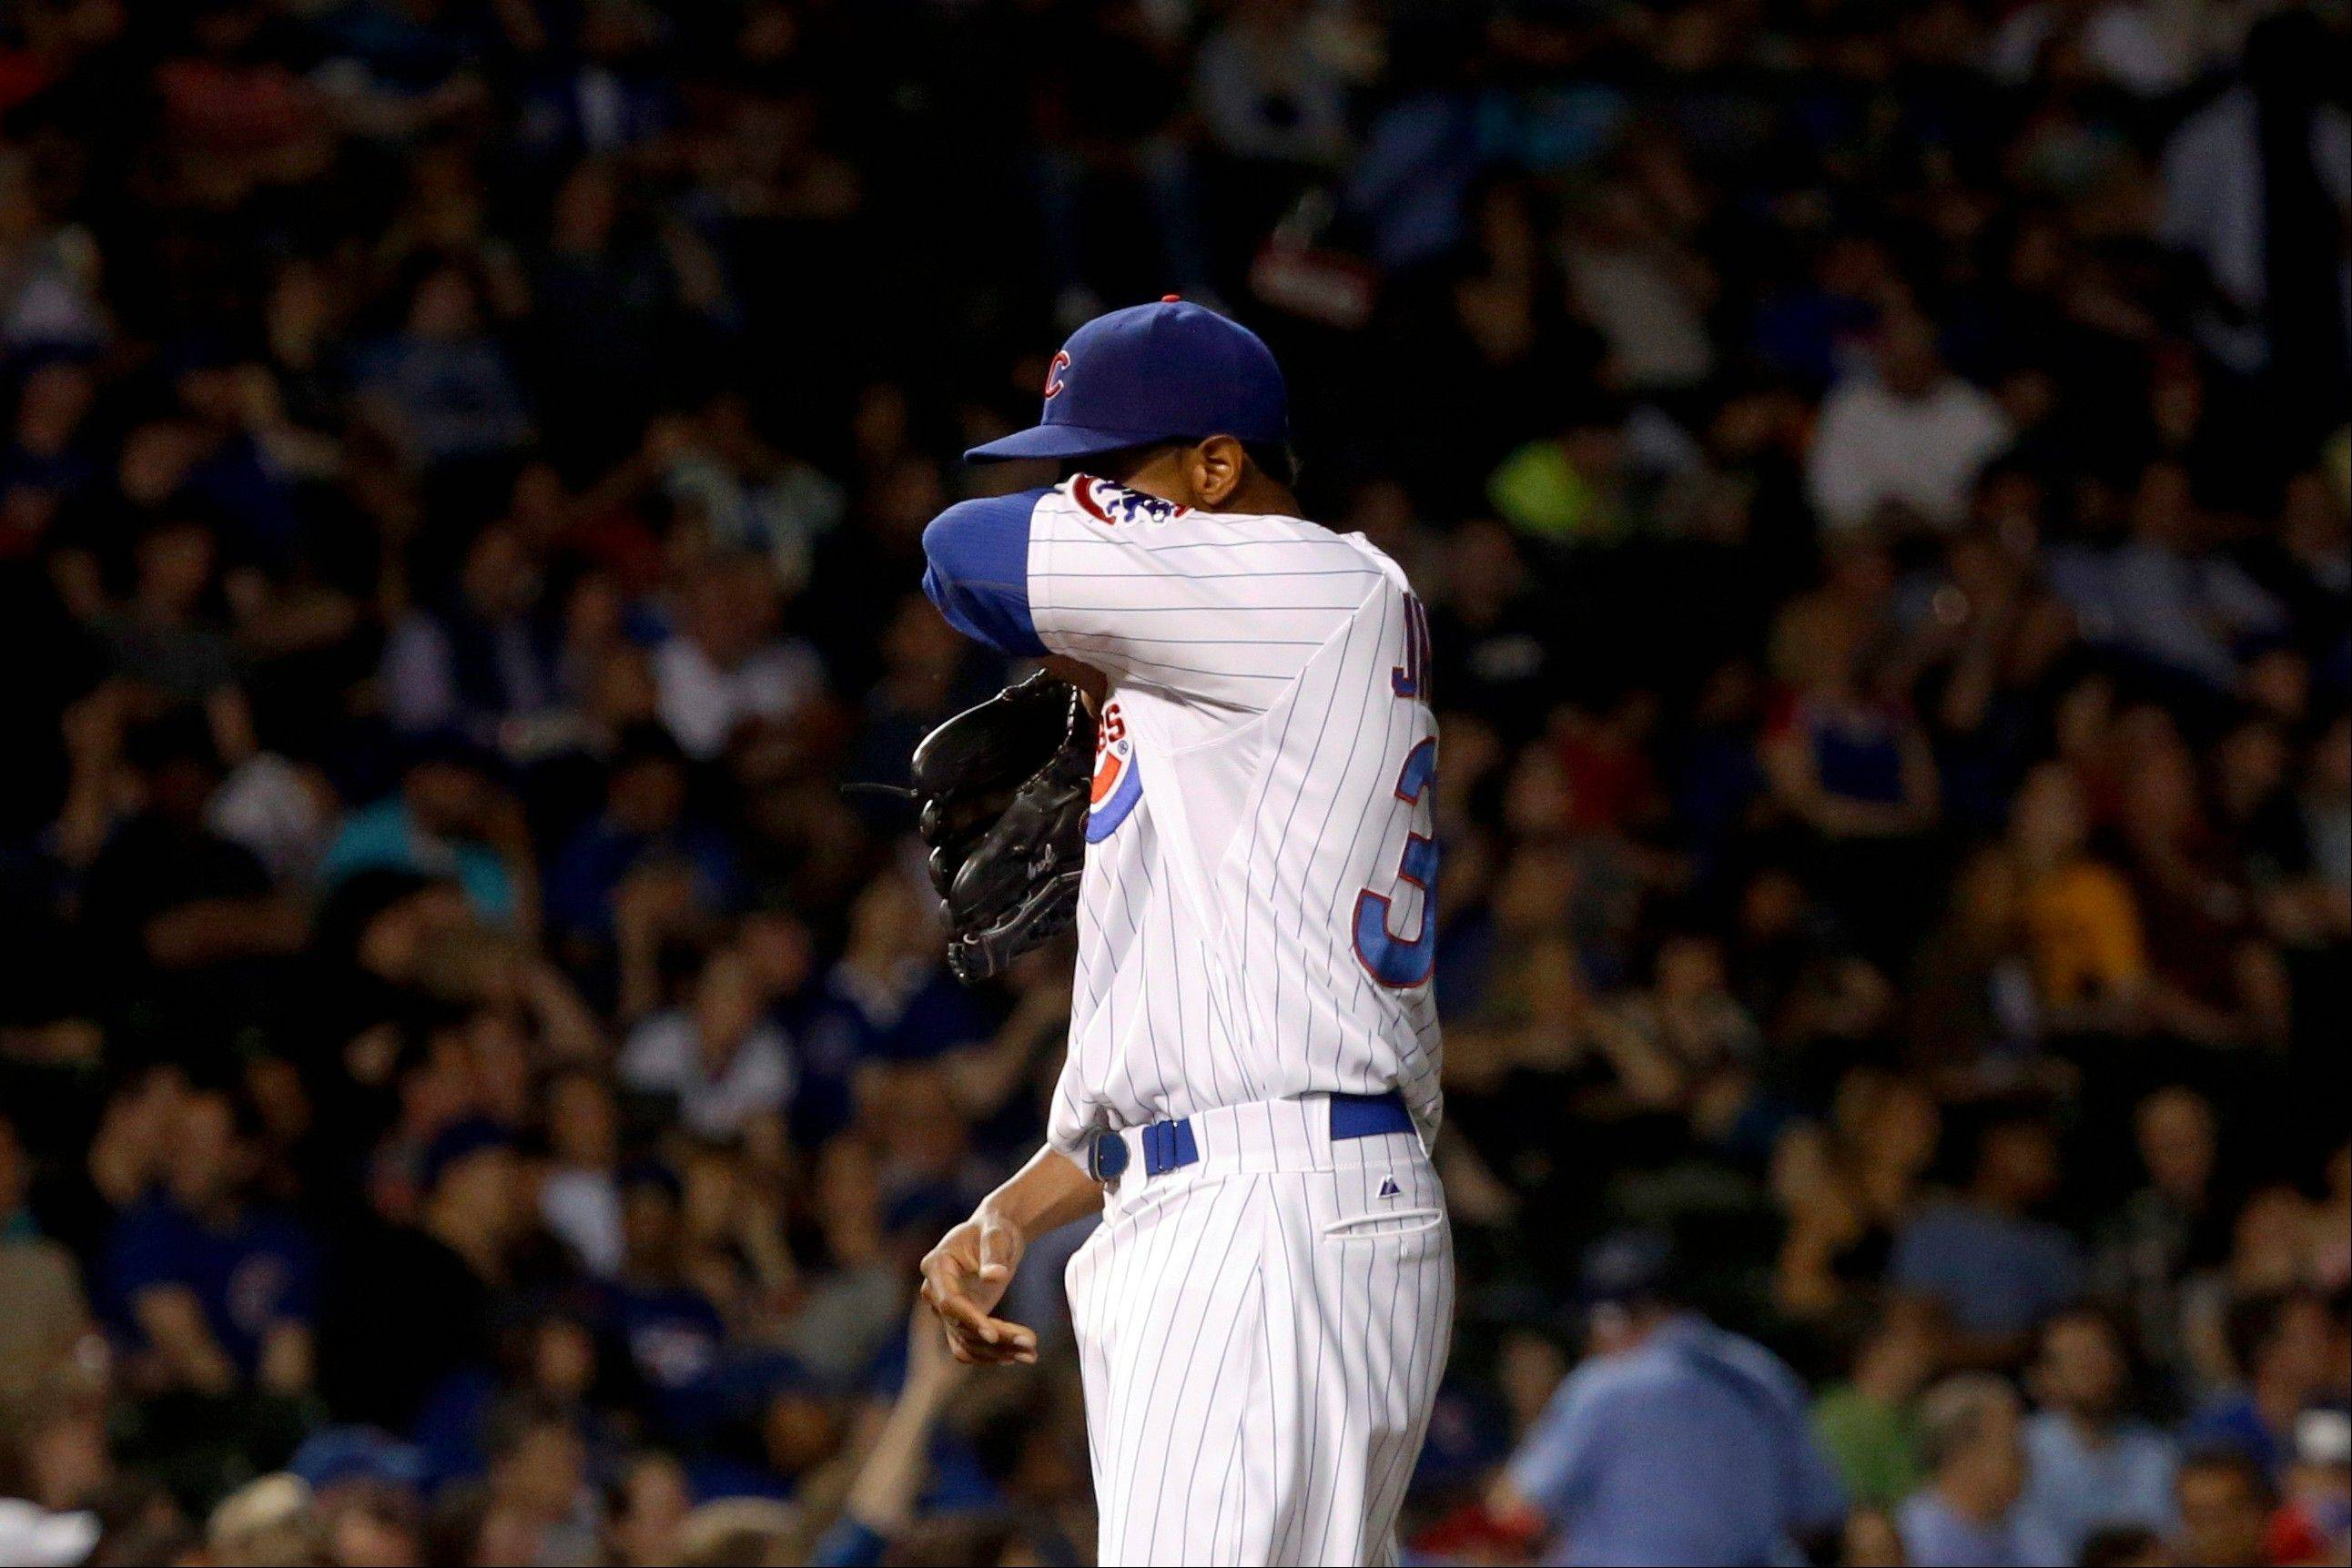 Chicago Cubs starting pitcher Edwin Jackson wipes his face during the fifth inning of a baseball game against the San Diego Padres, Tuesday, April 30, 2013, in Chicago. (AP Photo/Charles Rex Arbogast)